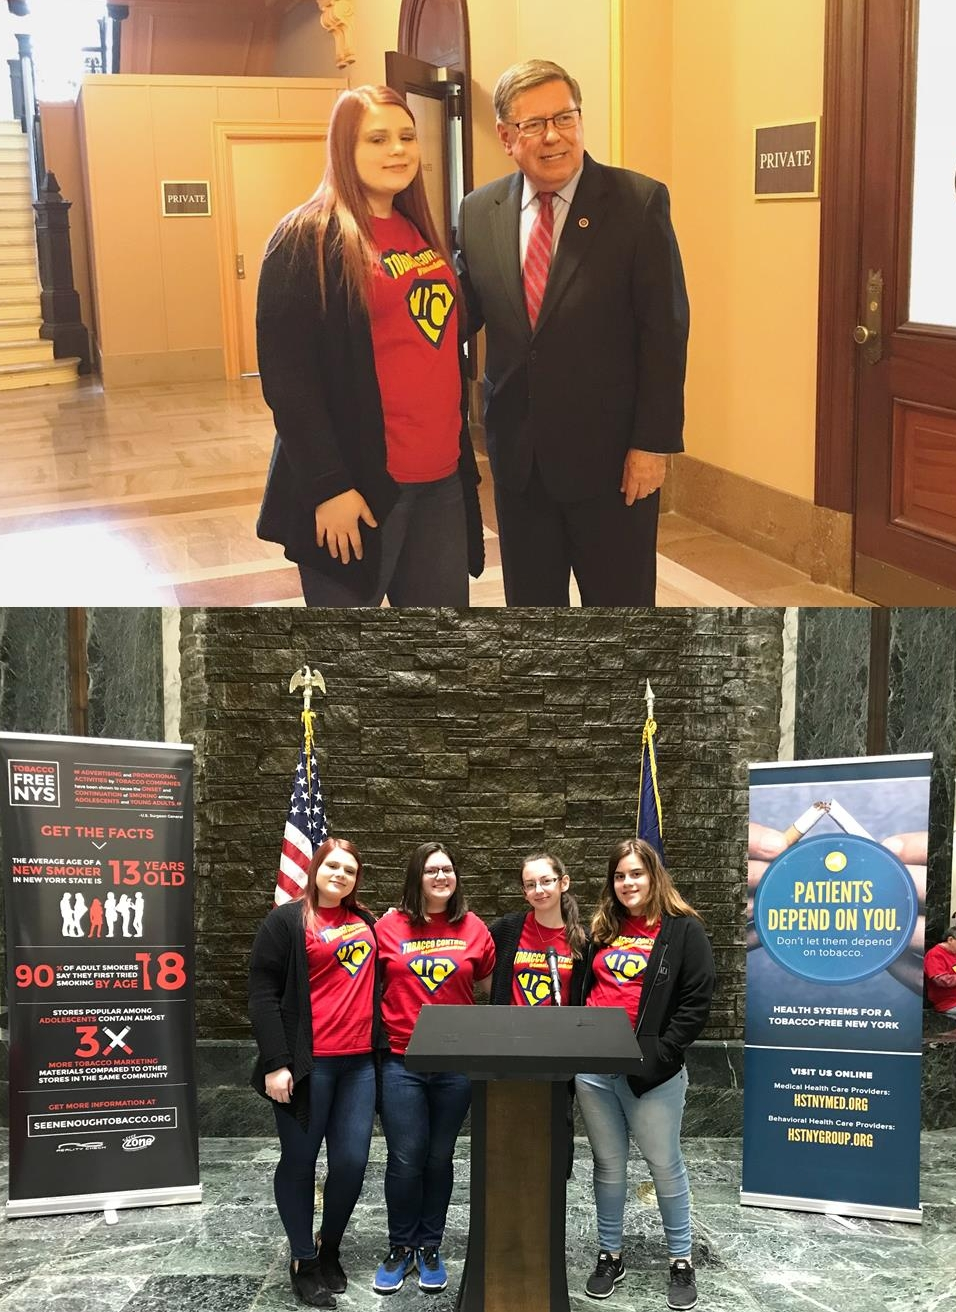 Cortland and Tompkins RC - Youth from Cortland and Tompkins Counties took their messages to Albany on Legislative Day. It appears they had listening ears.